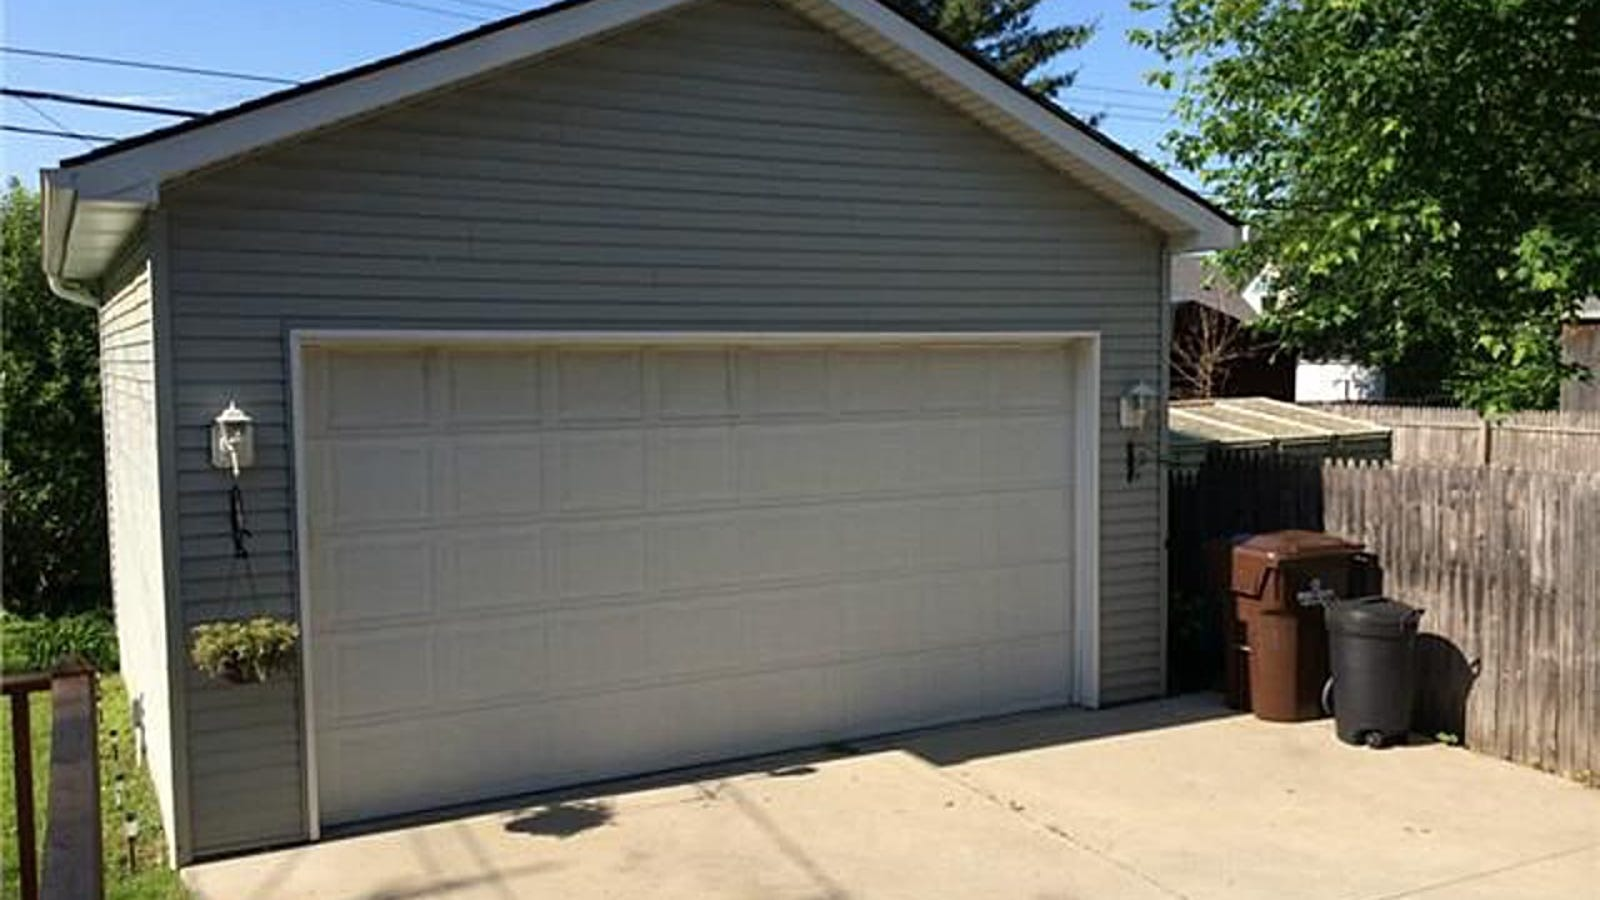 Garage for sale house included for 5 car garage house for sale